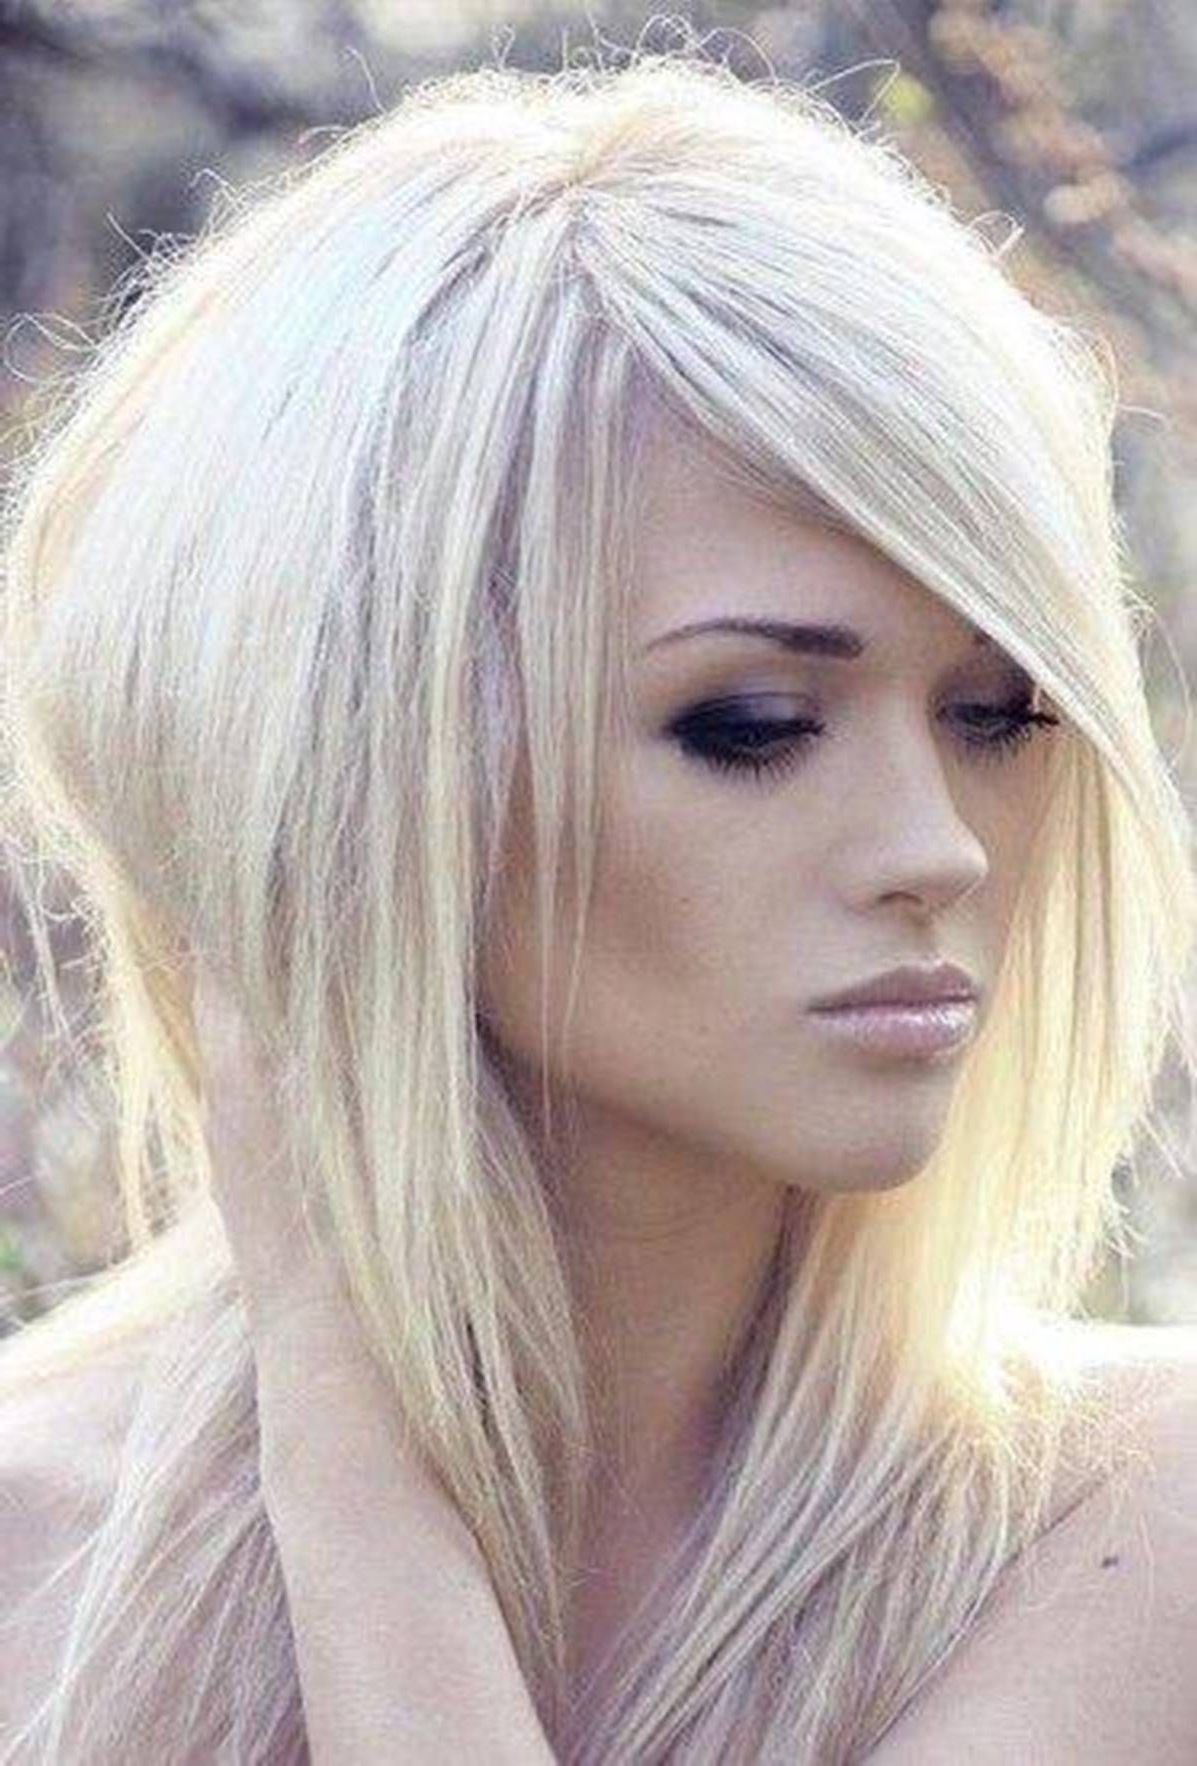 [%popular Long Shag Hairstyles Regarding Blonde Long Shag Hairstyles [ Waterbabiesbikini ] #beauty|blonde Long Shag Hairstyles [ Waterbabiesbikini ] #beauty For Well Known Long Shag Hairstyles%] (View 8 of 15)